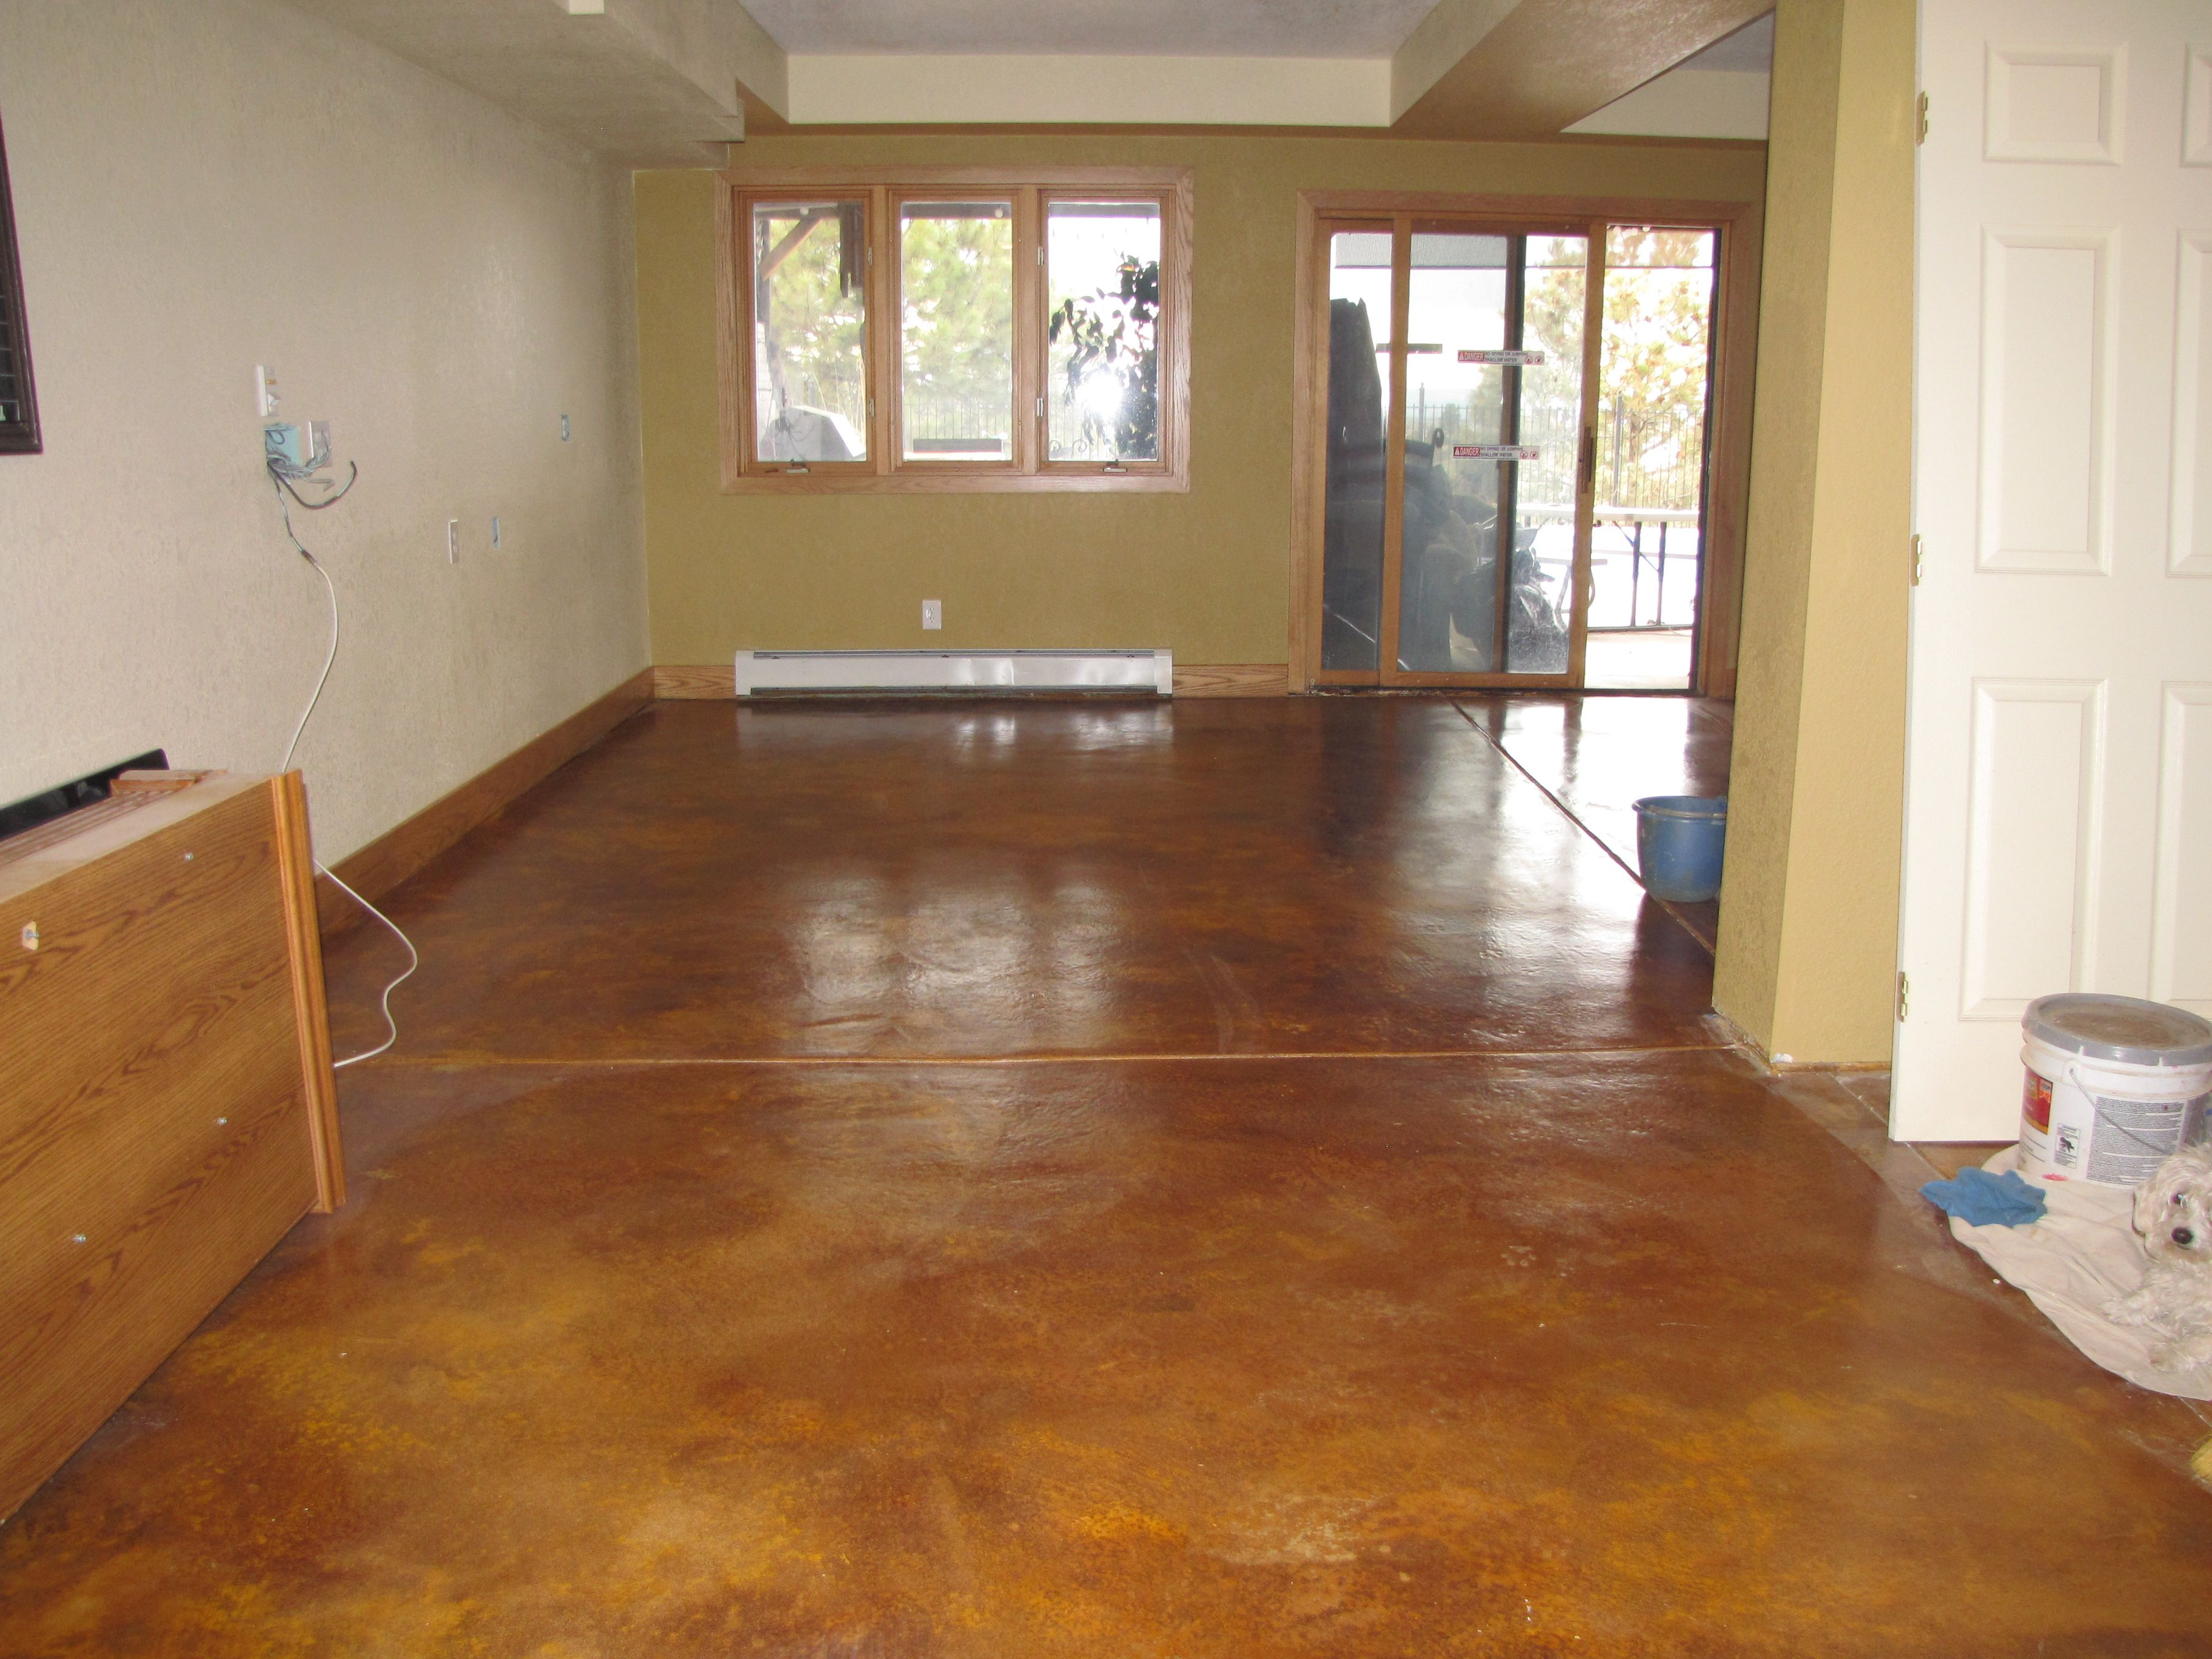 Inspirational Best Paint for Basement Floor